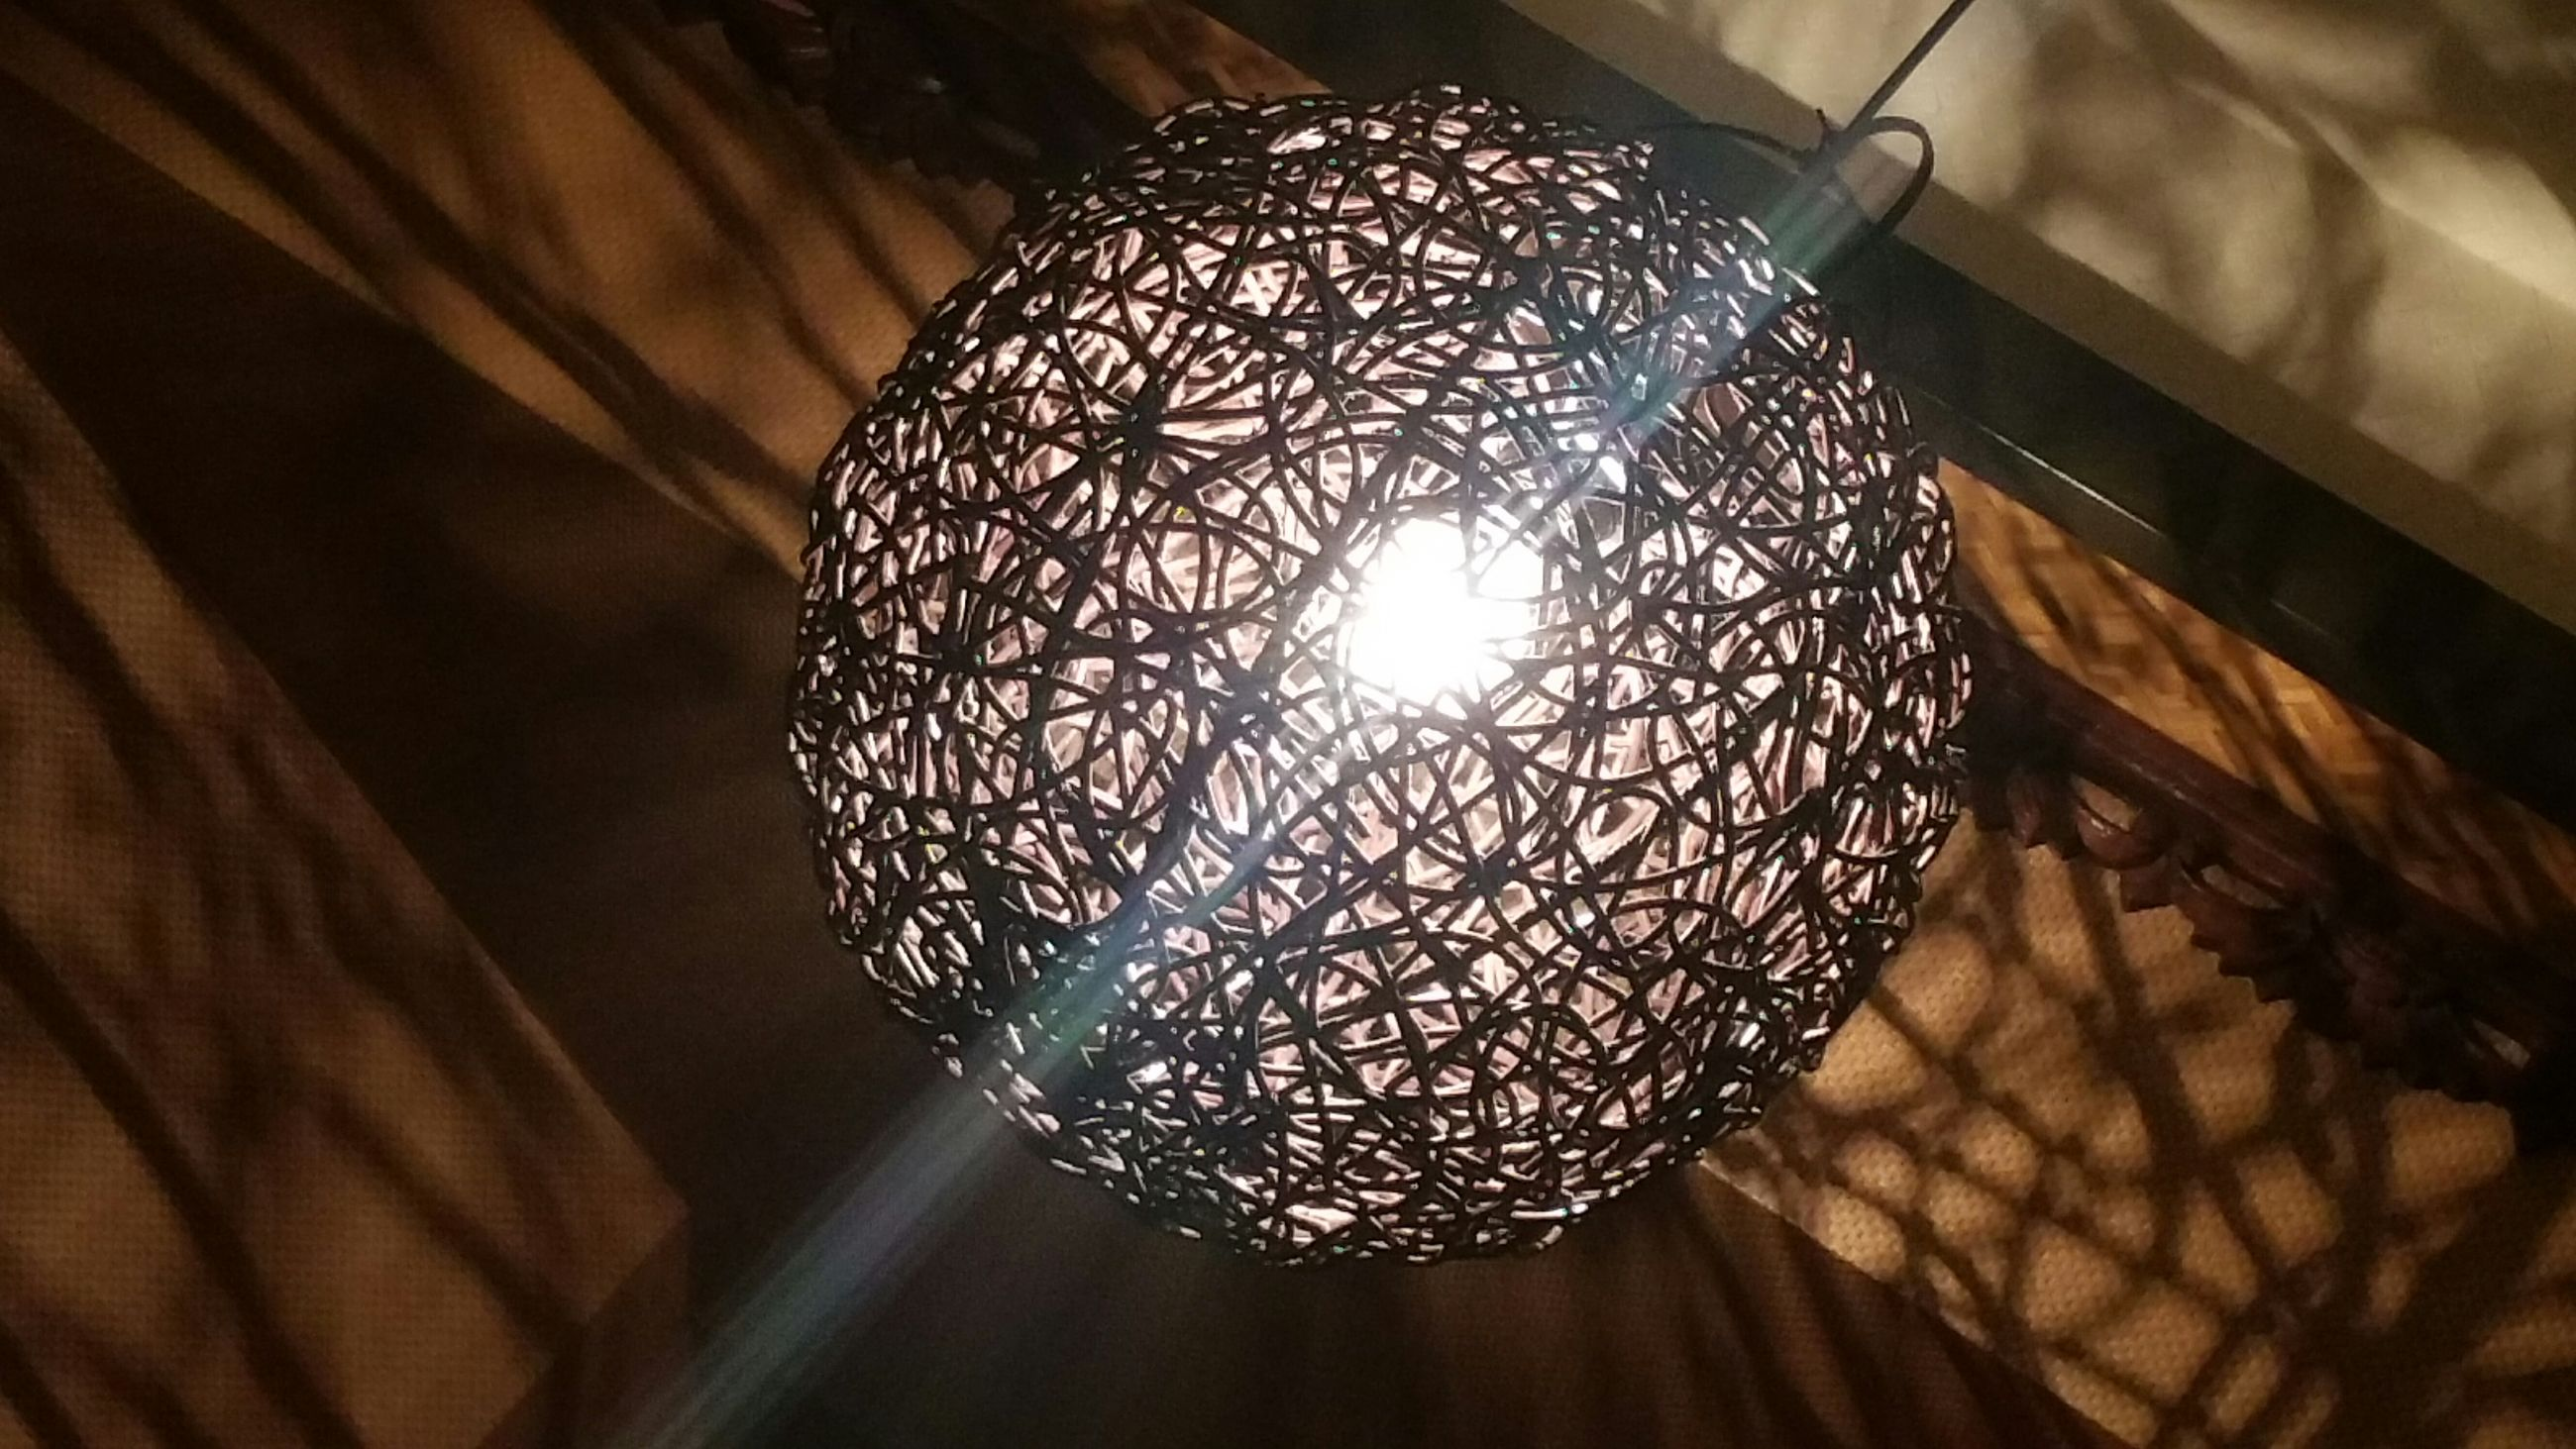 indoors, pattern, decoration, ceiling, design, hanging, low angle view, lighting equipment, illuminated, close-up, decor, shape, shiny, chandelier, glowing, crystal, no people, directly below, electricity, backgrounds